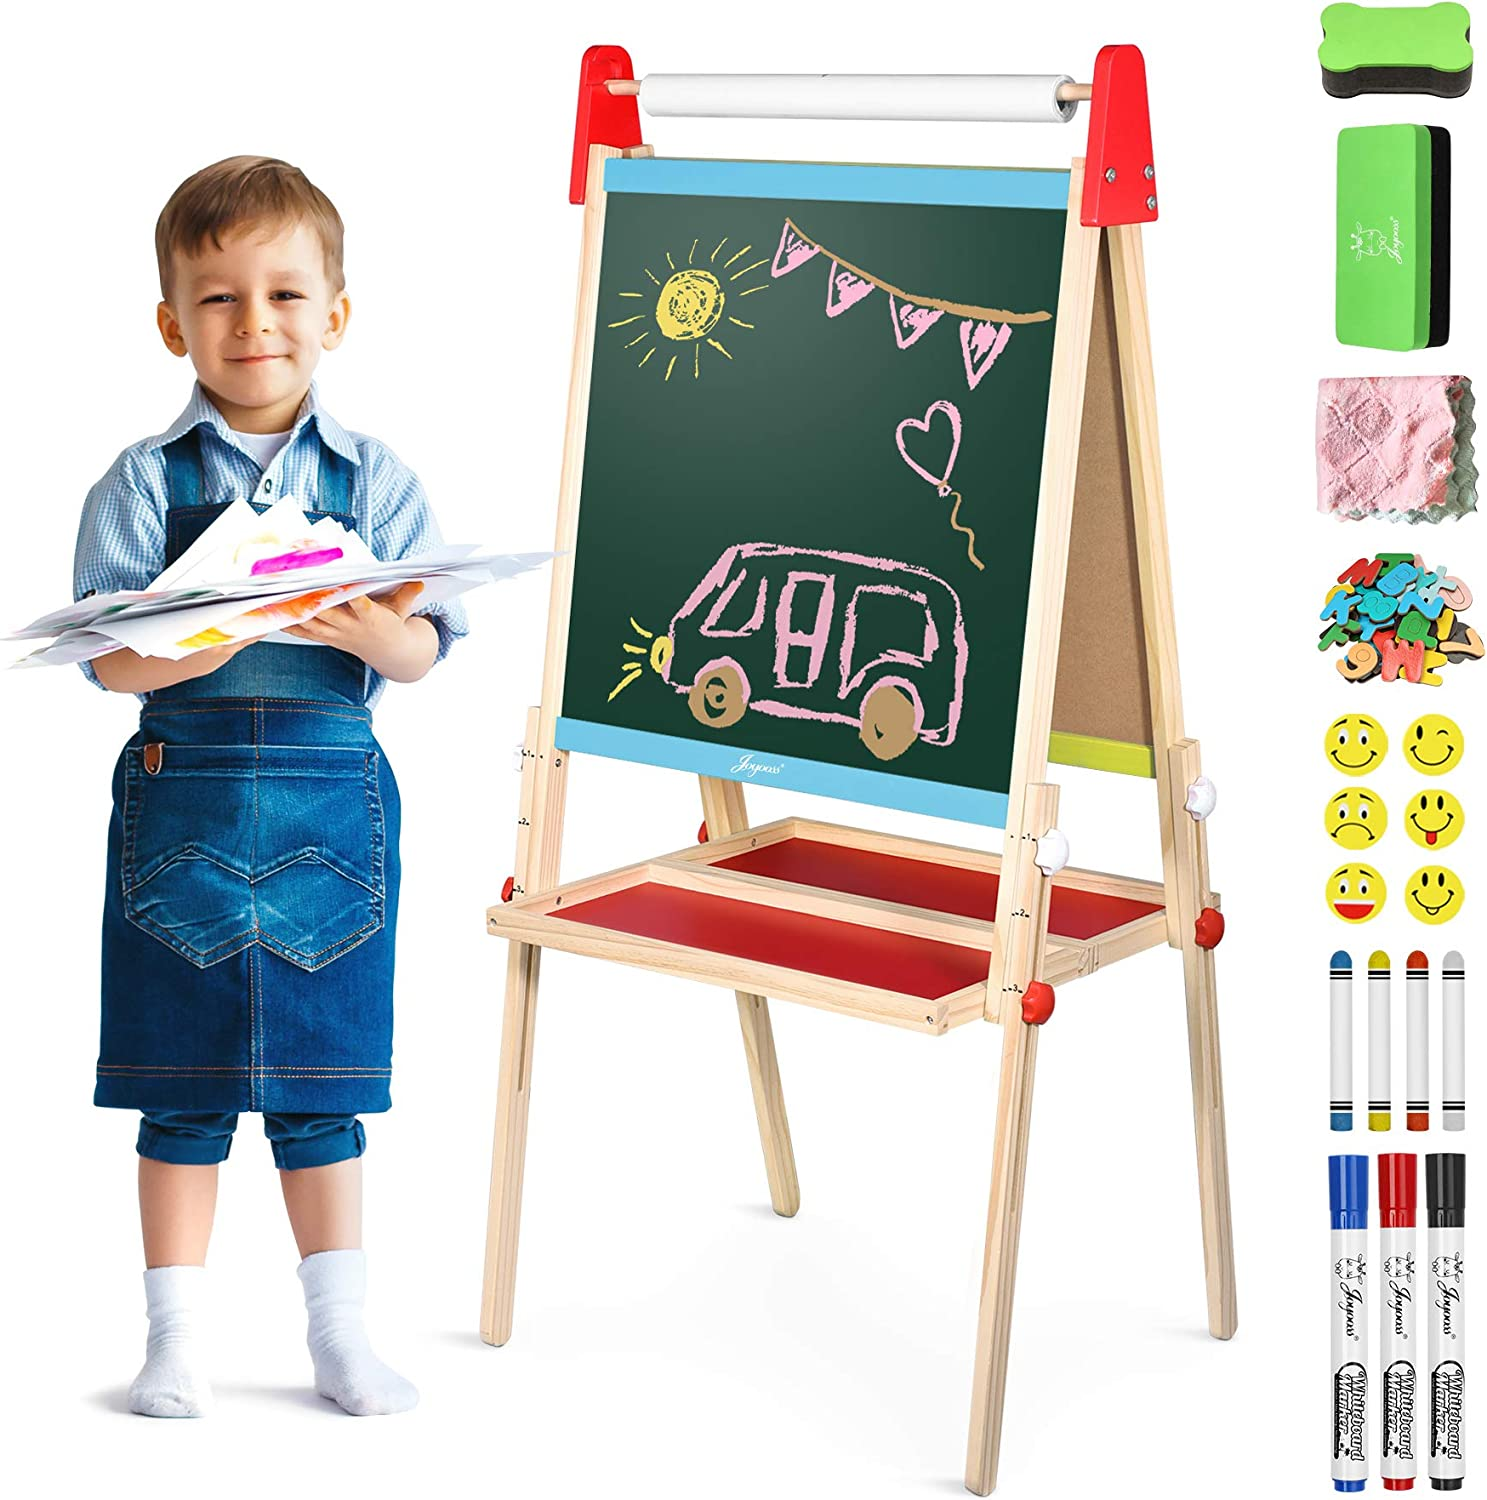 Joyooss Easel for Kids, Wooden Whiteboard & Chalkboard Easel, Foldable Height Adjustable Double Sided Art Easel for Toddlers with Paper Roll, Magnetic Letters, Markers